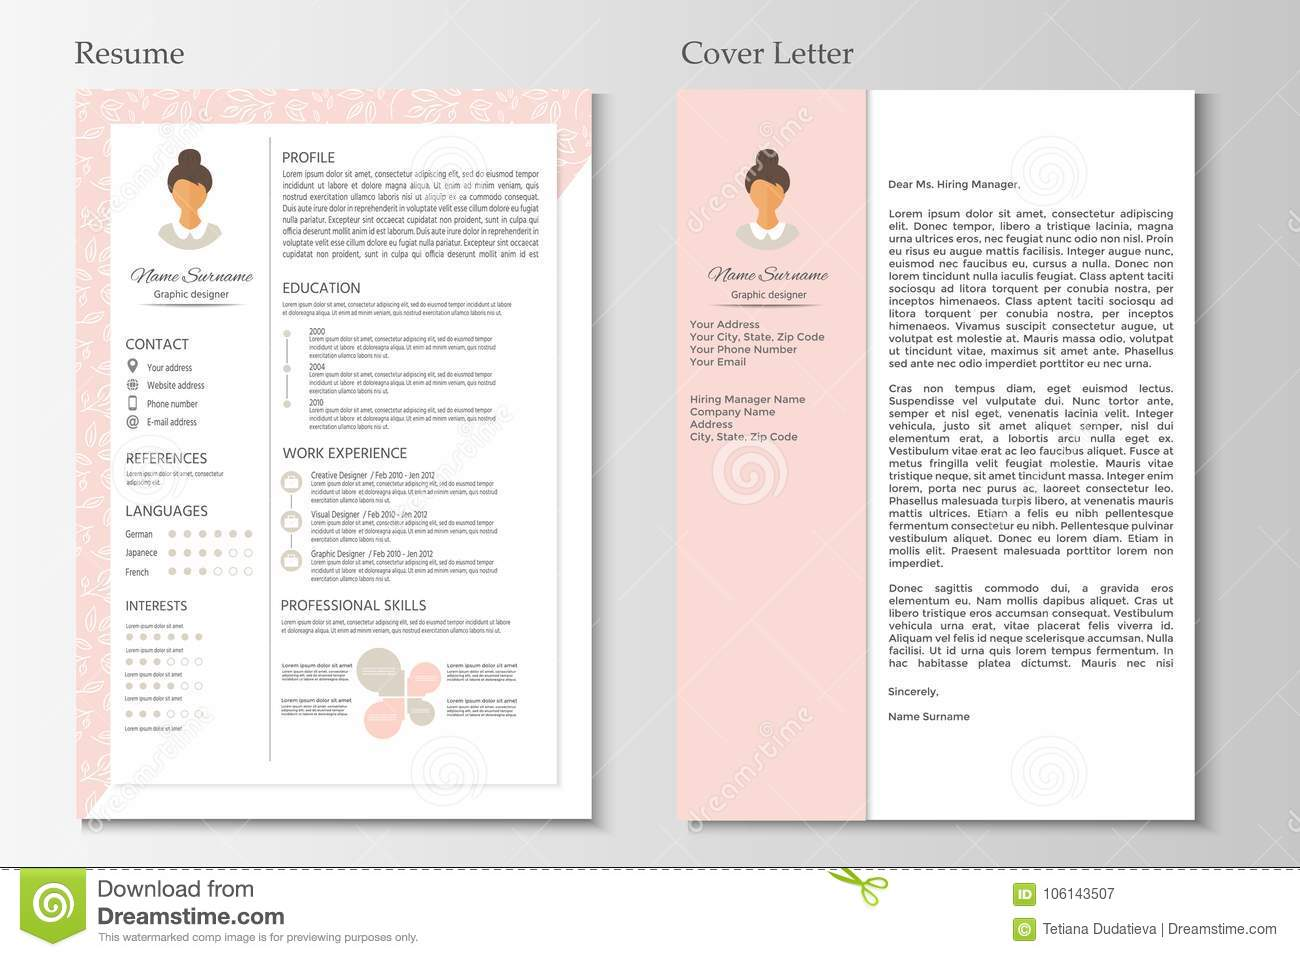 Feminine Resume And Cover Letter With Infographic Design Stock